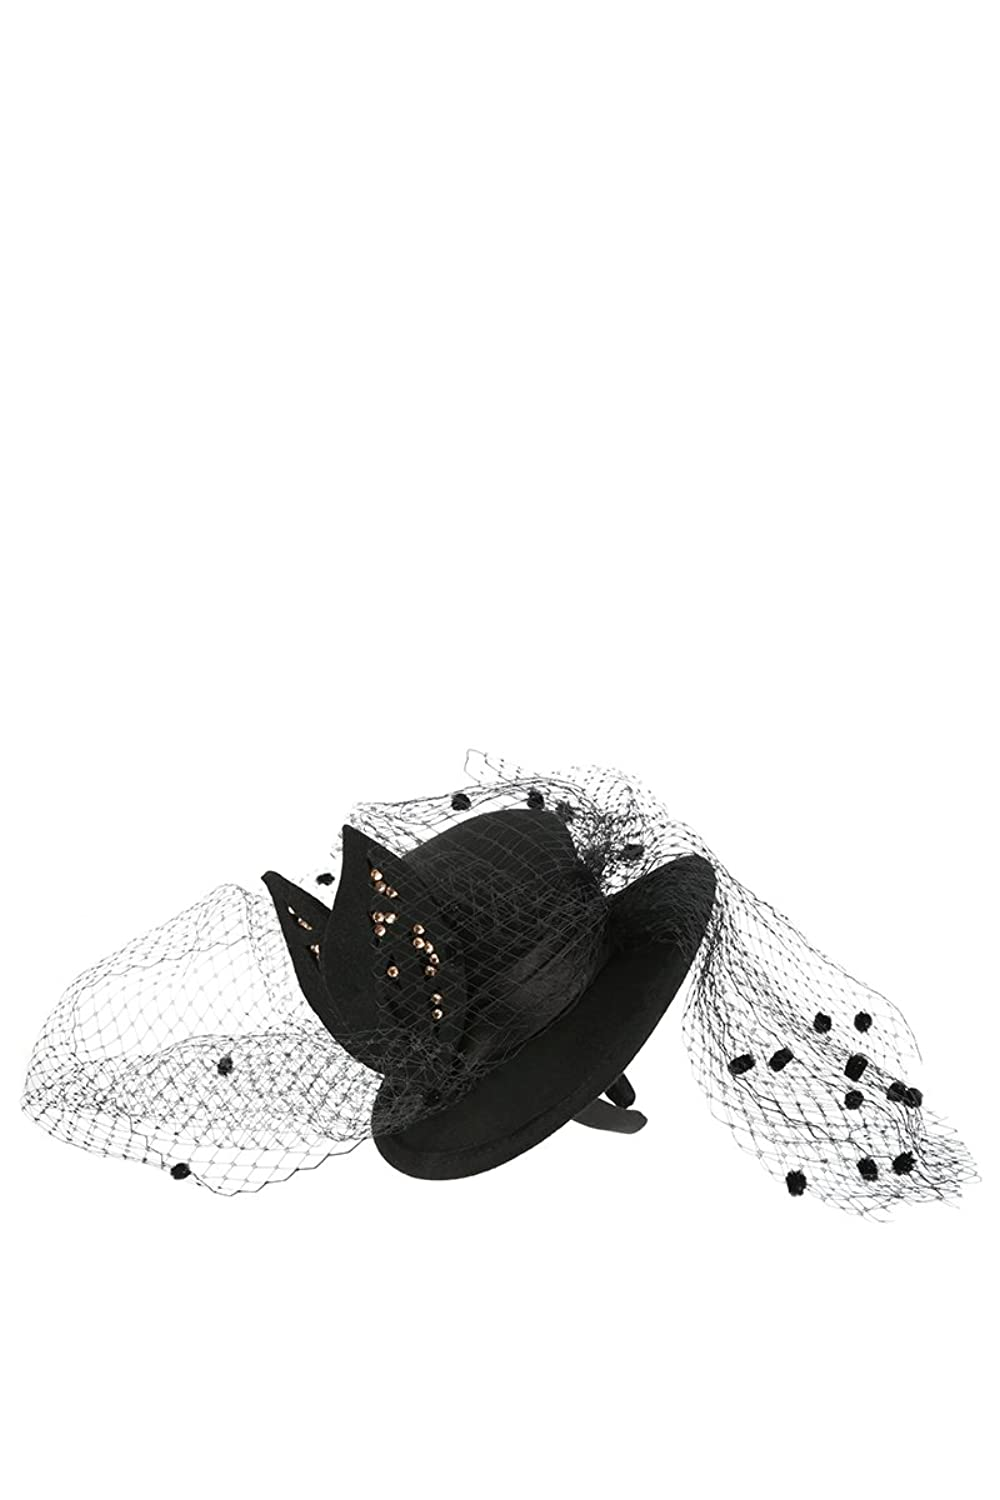 MeshMe Womens Black Fashion Headpiece Hat Fascinator with Mesh Net